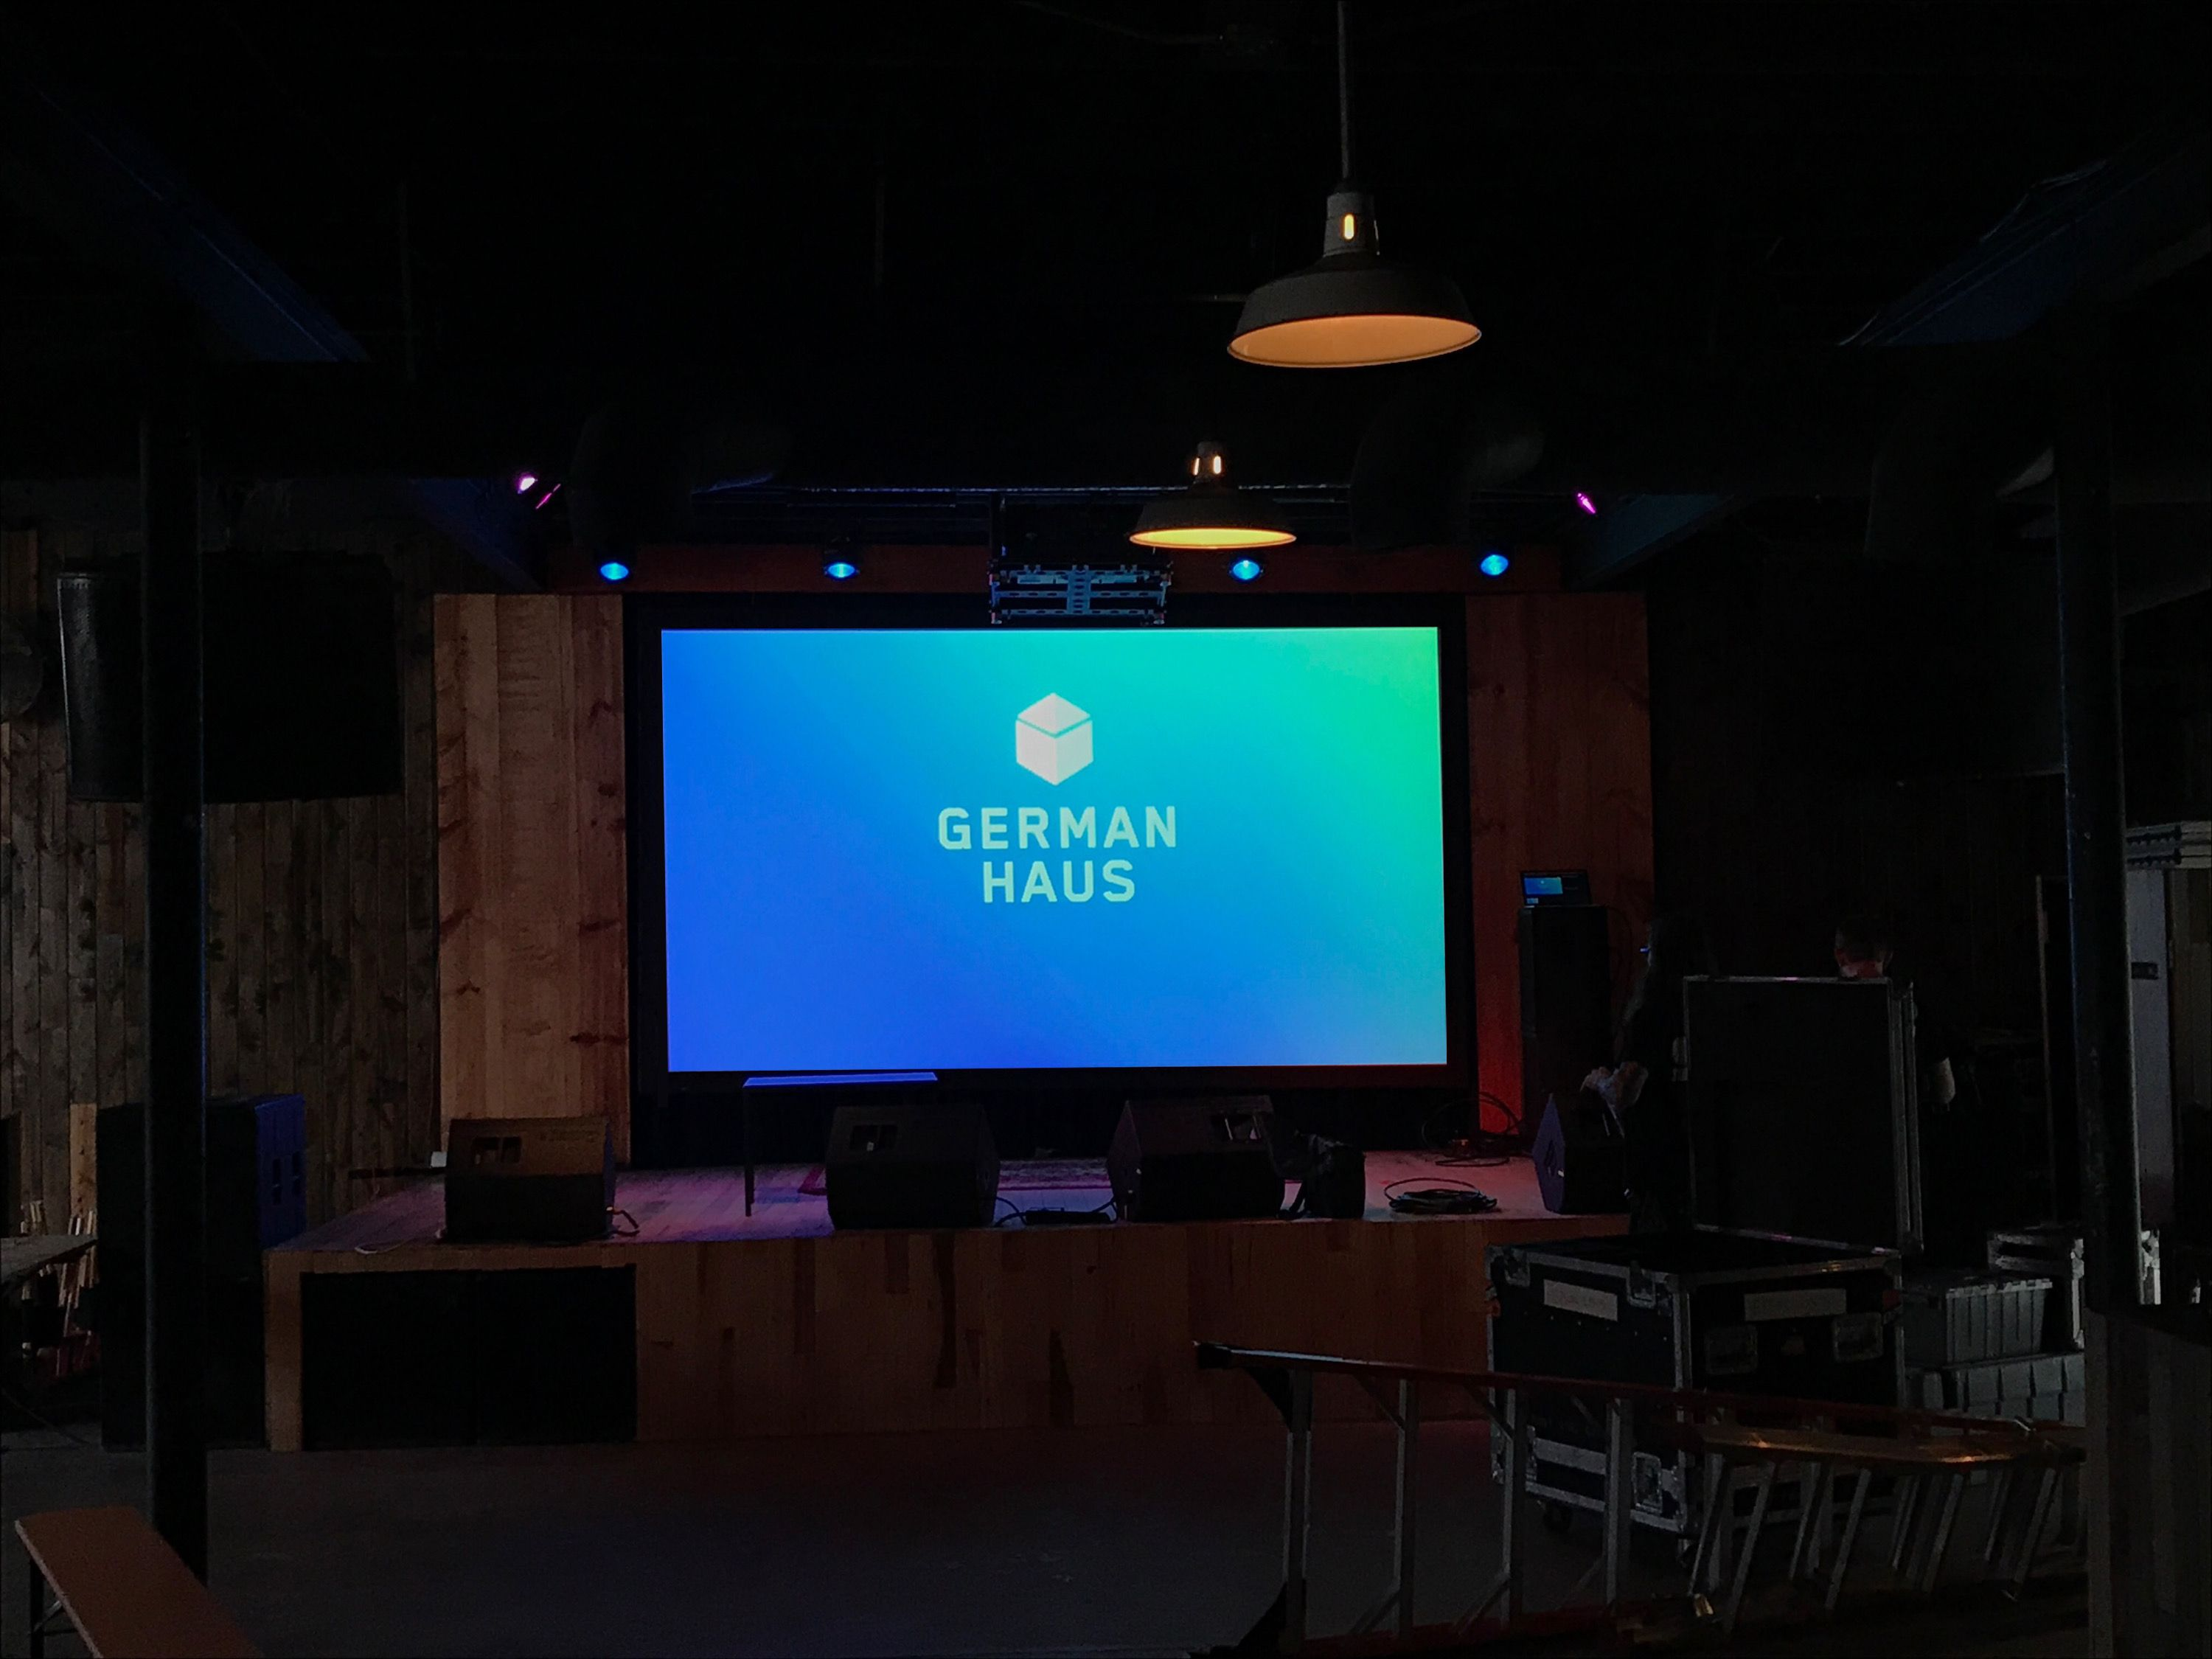 Projection Display with German Haus Logo